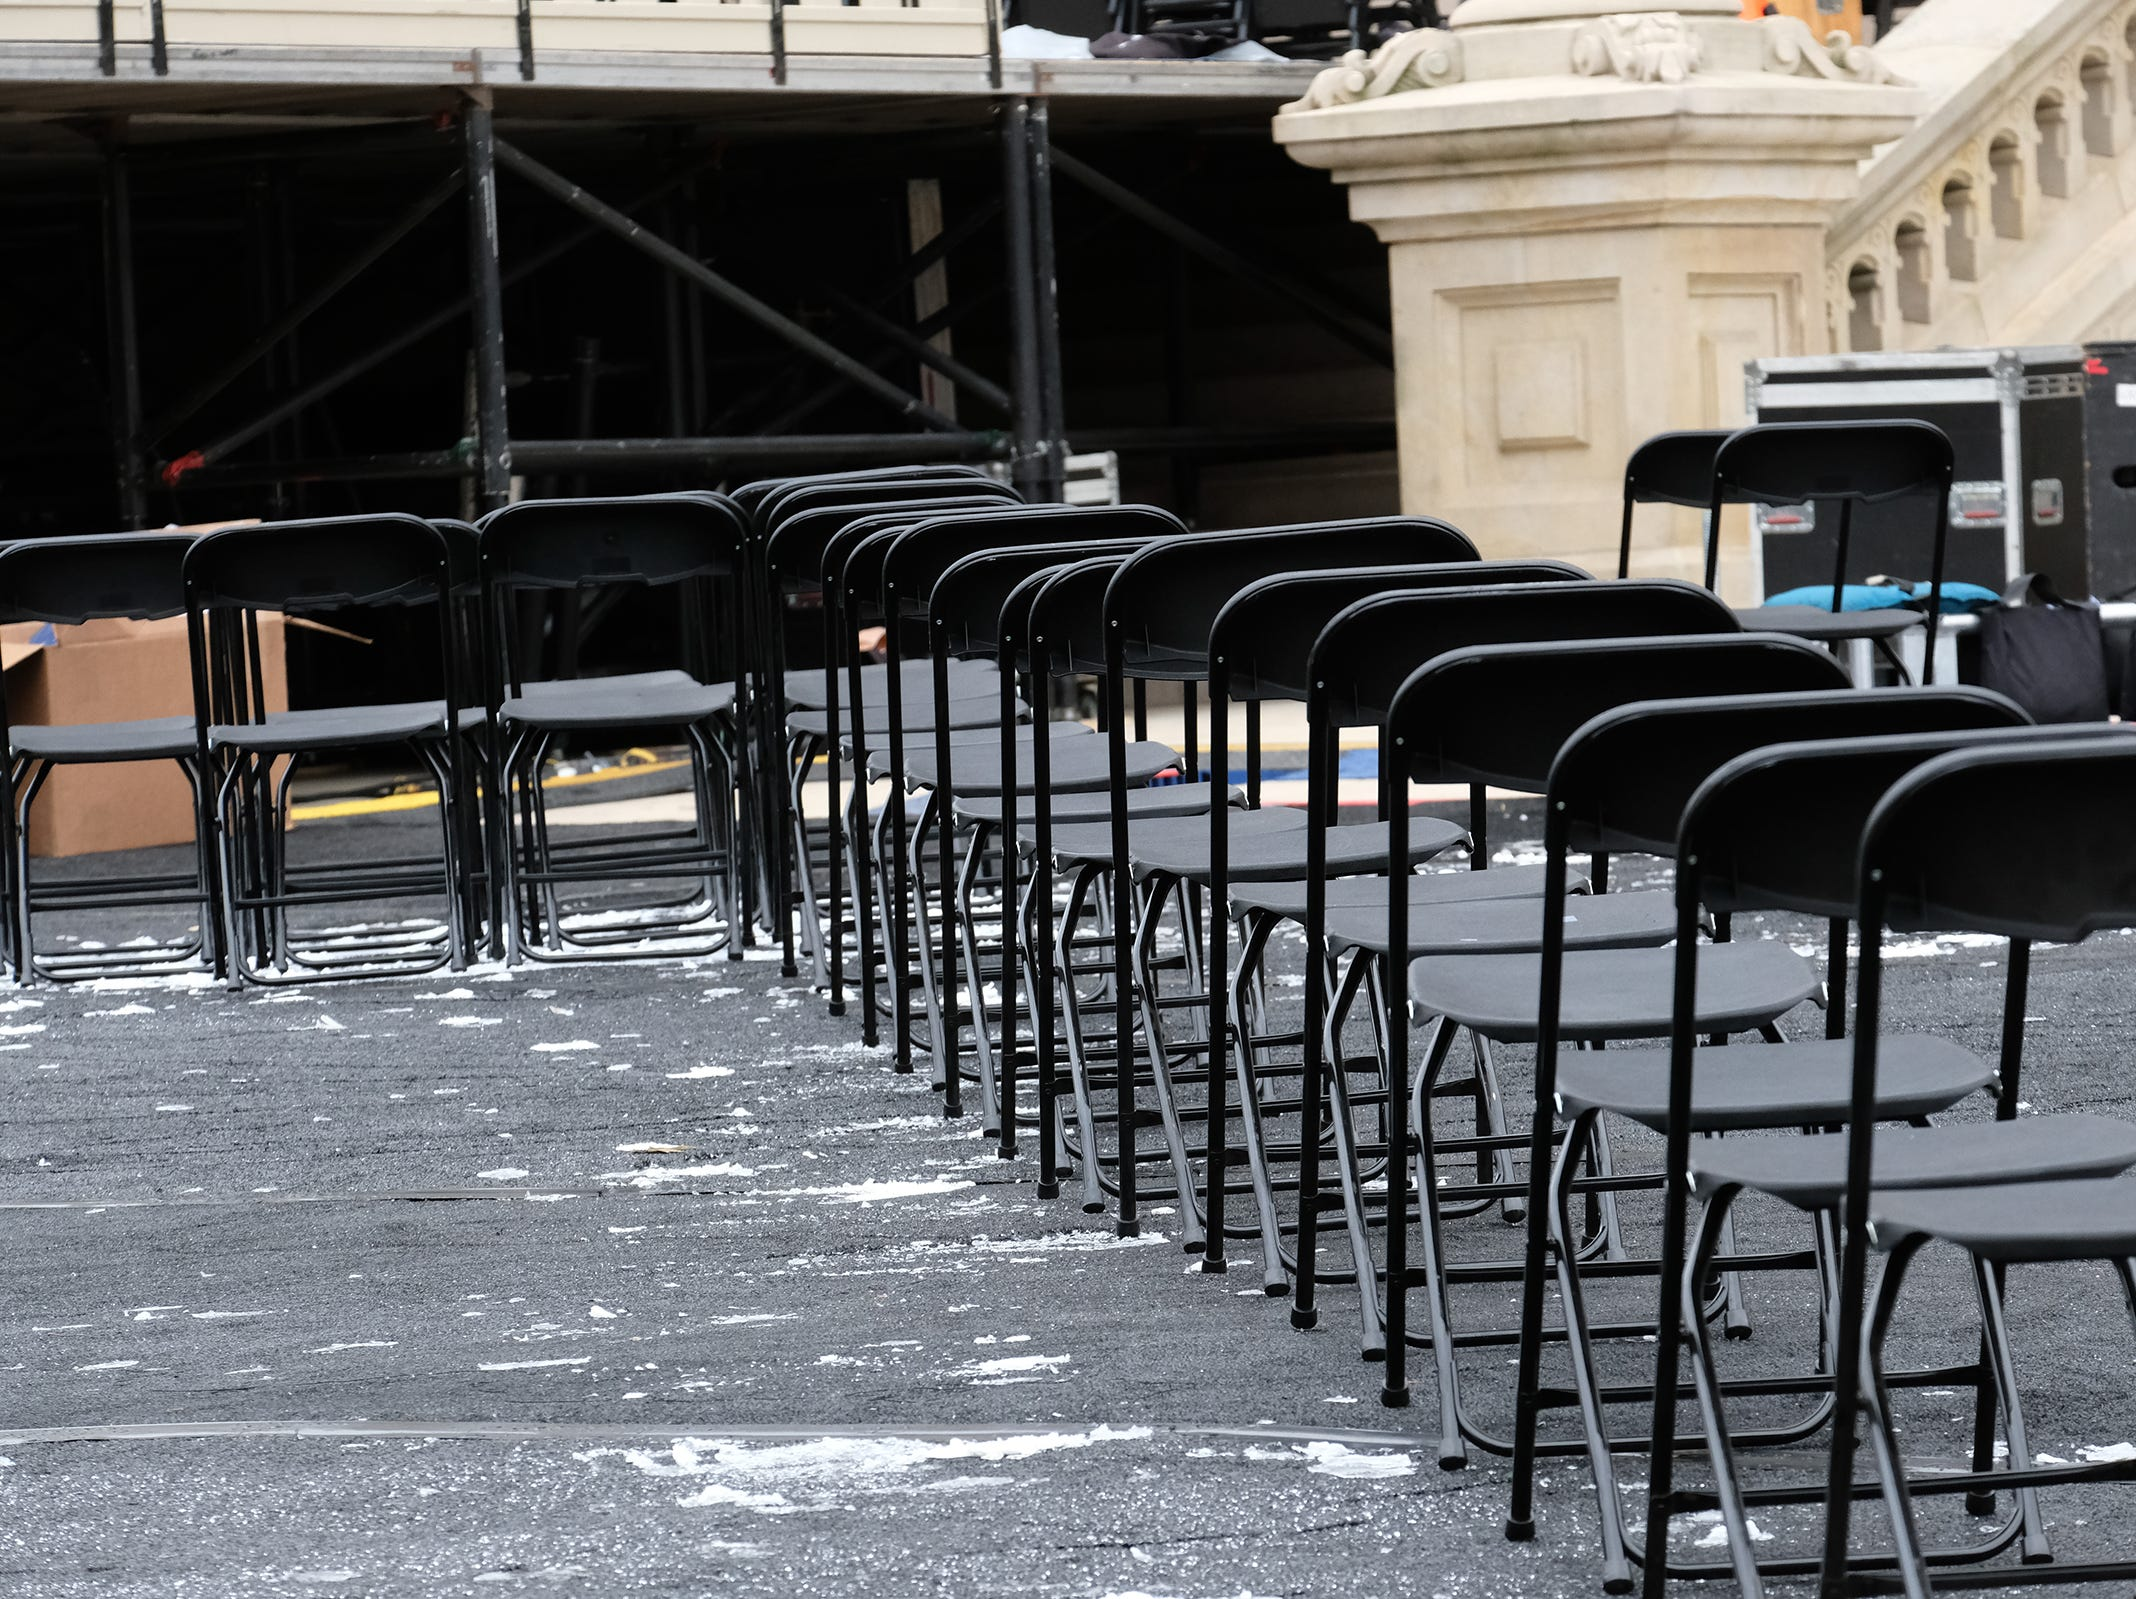 Some chairs are set-up at the state Capitol Saturday, Dec. 29, 2018 as the preparations for the Governor's inauguration get underway.